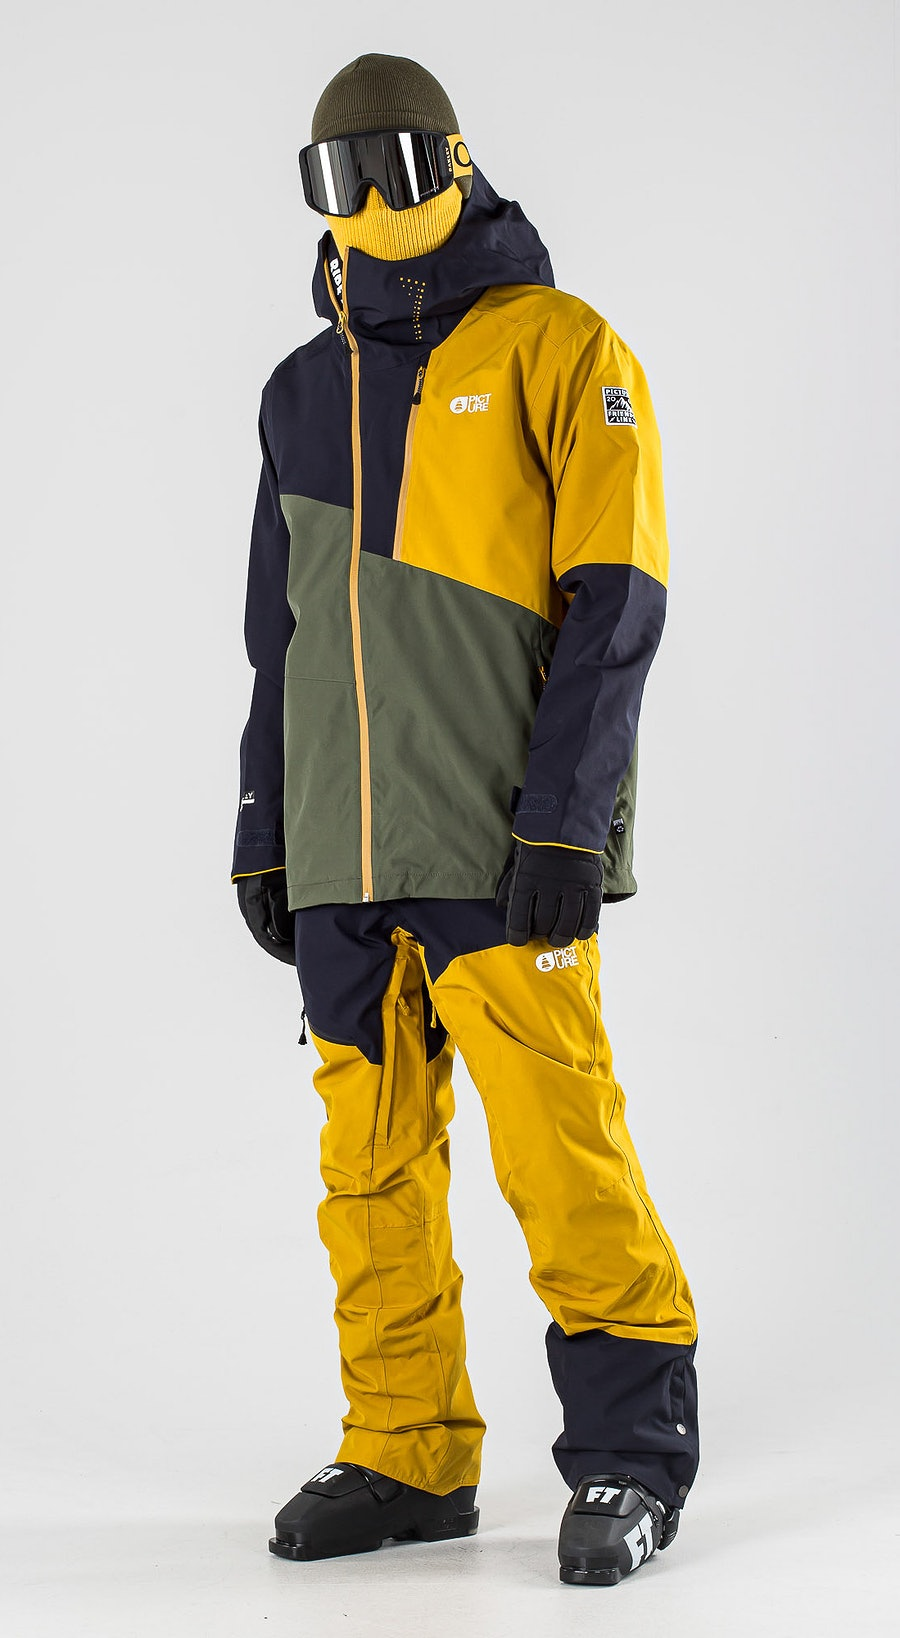 Picture Alpin Lychen Green Vêtements de Ski Multi